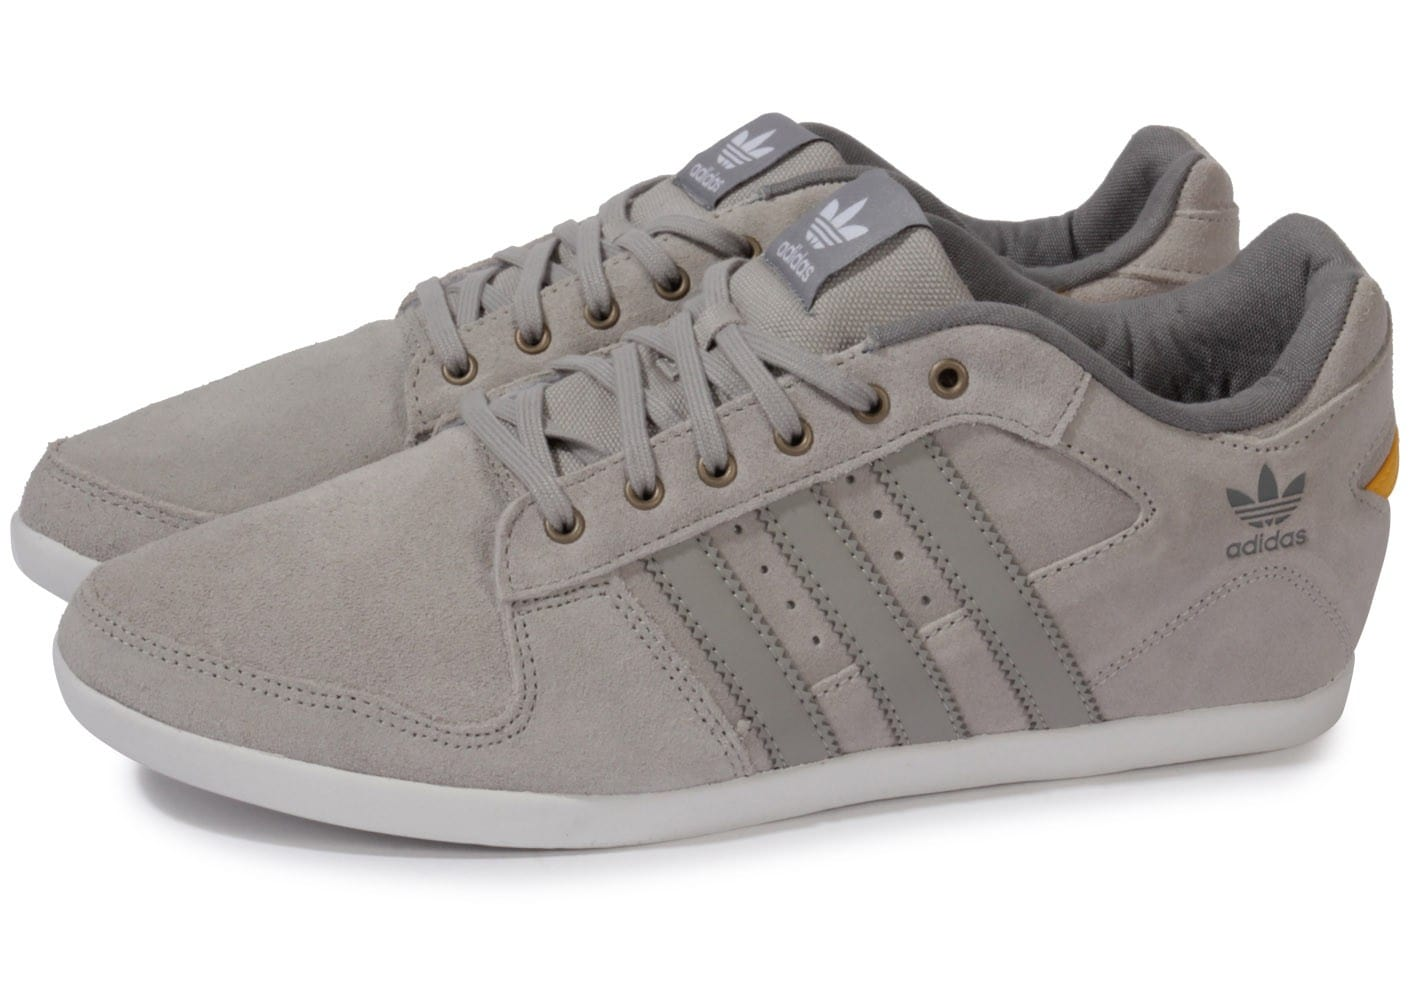 adidas Plimcana 2.0 Grise Chaussures Baskets homme Chausport